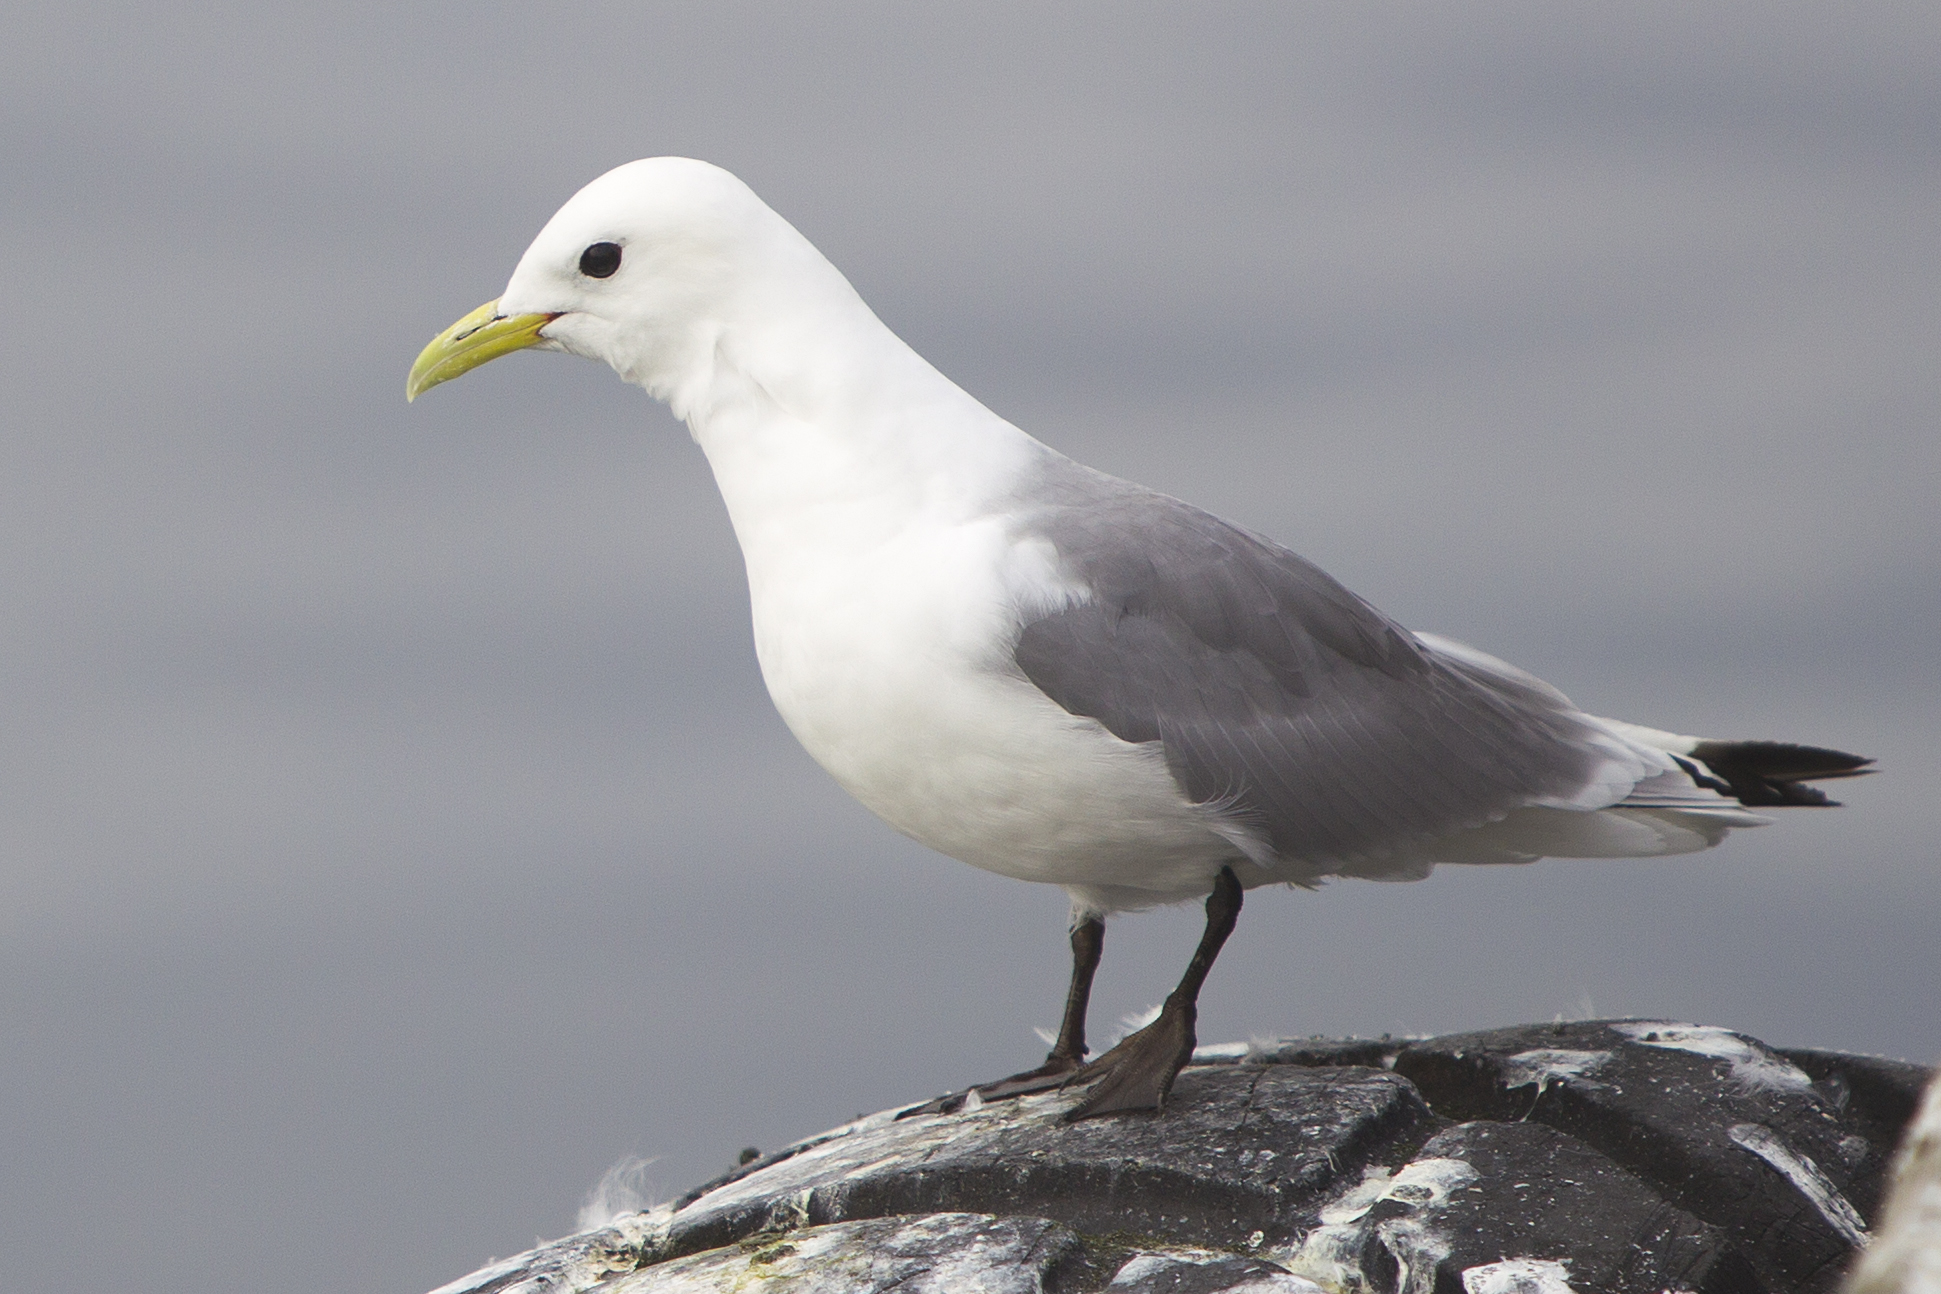 Hunting Black-legged Kittiwake in iceland